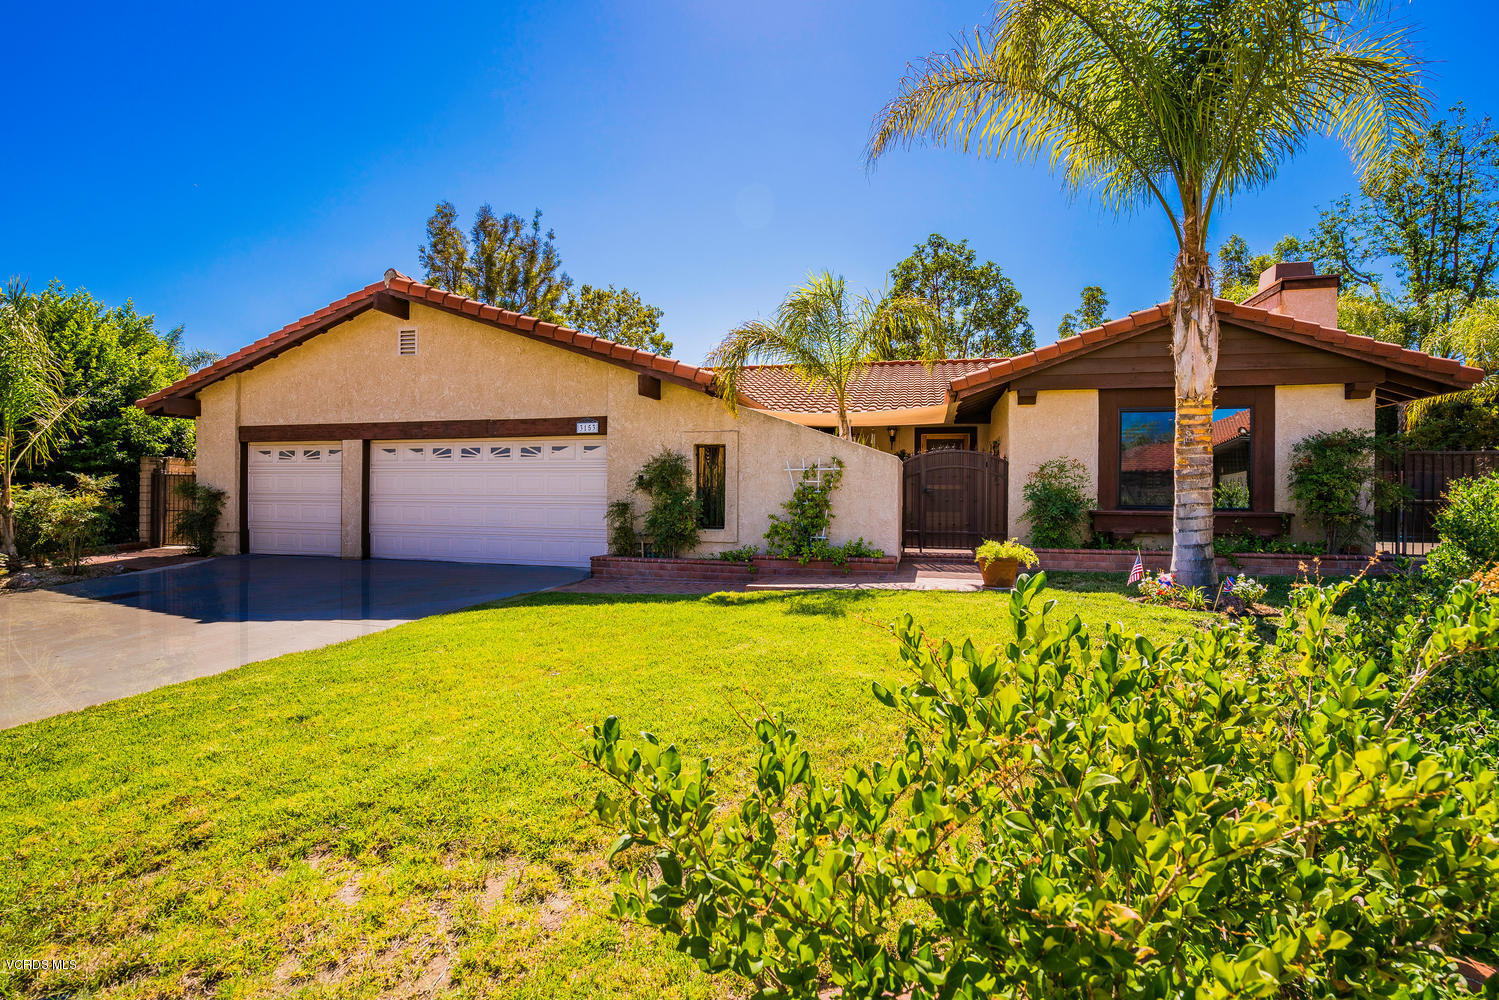 3153 Shad Court, Simi Valley, CA 93063